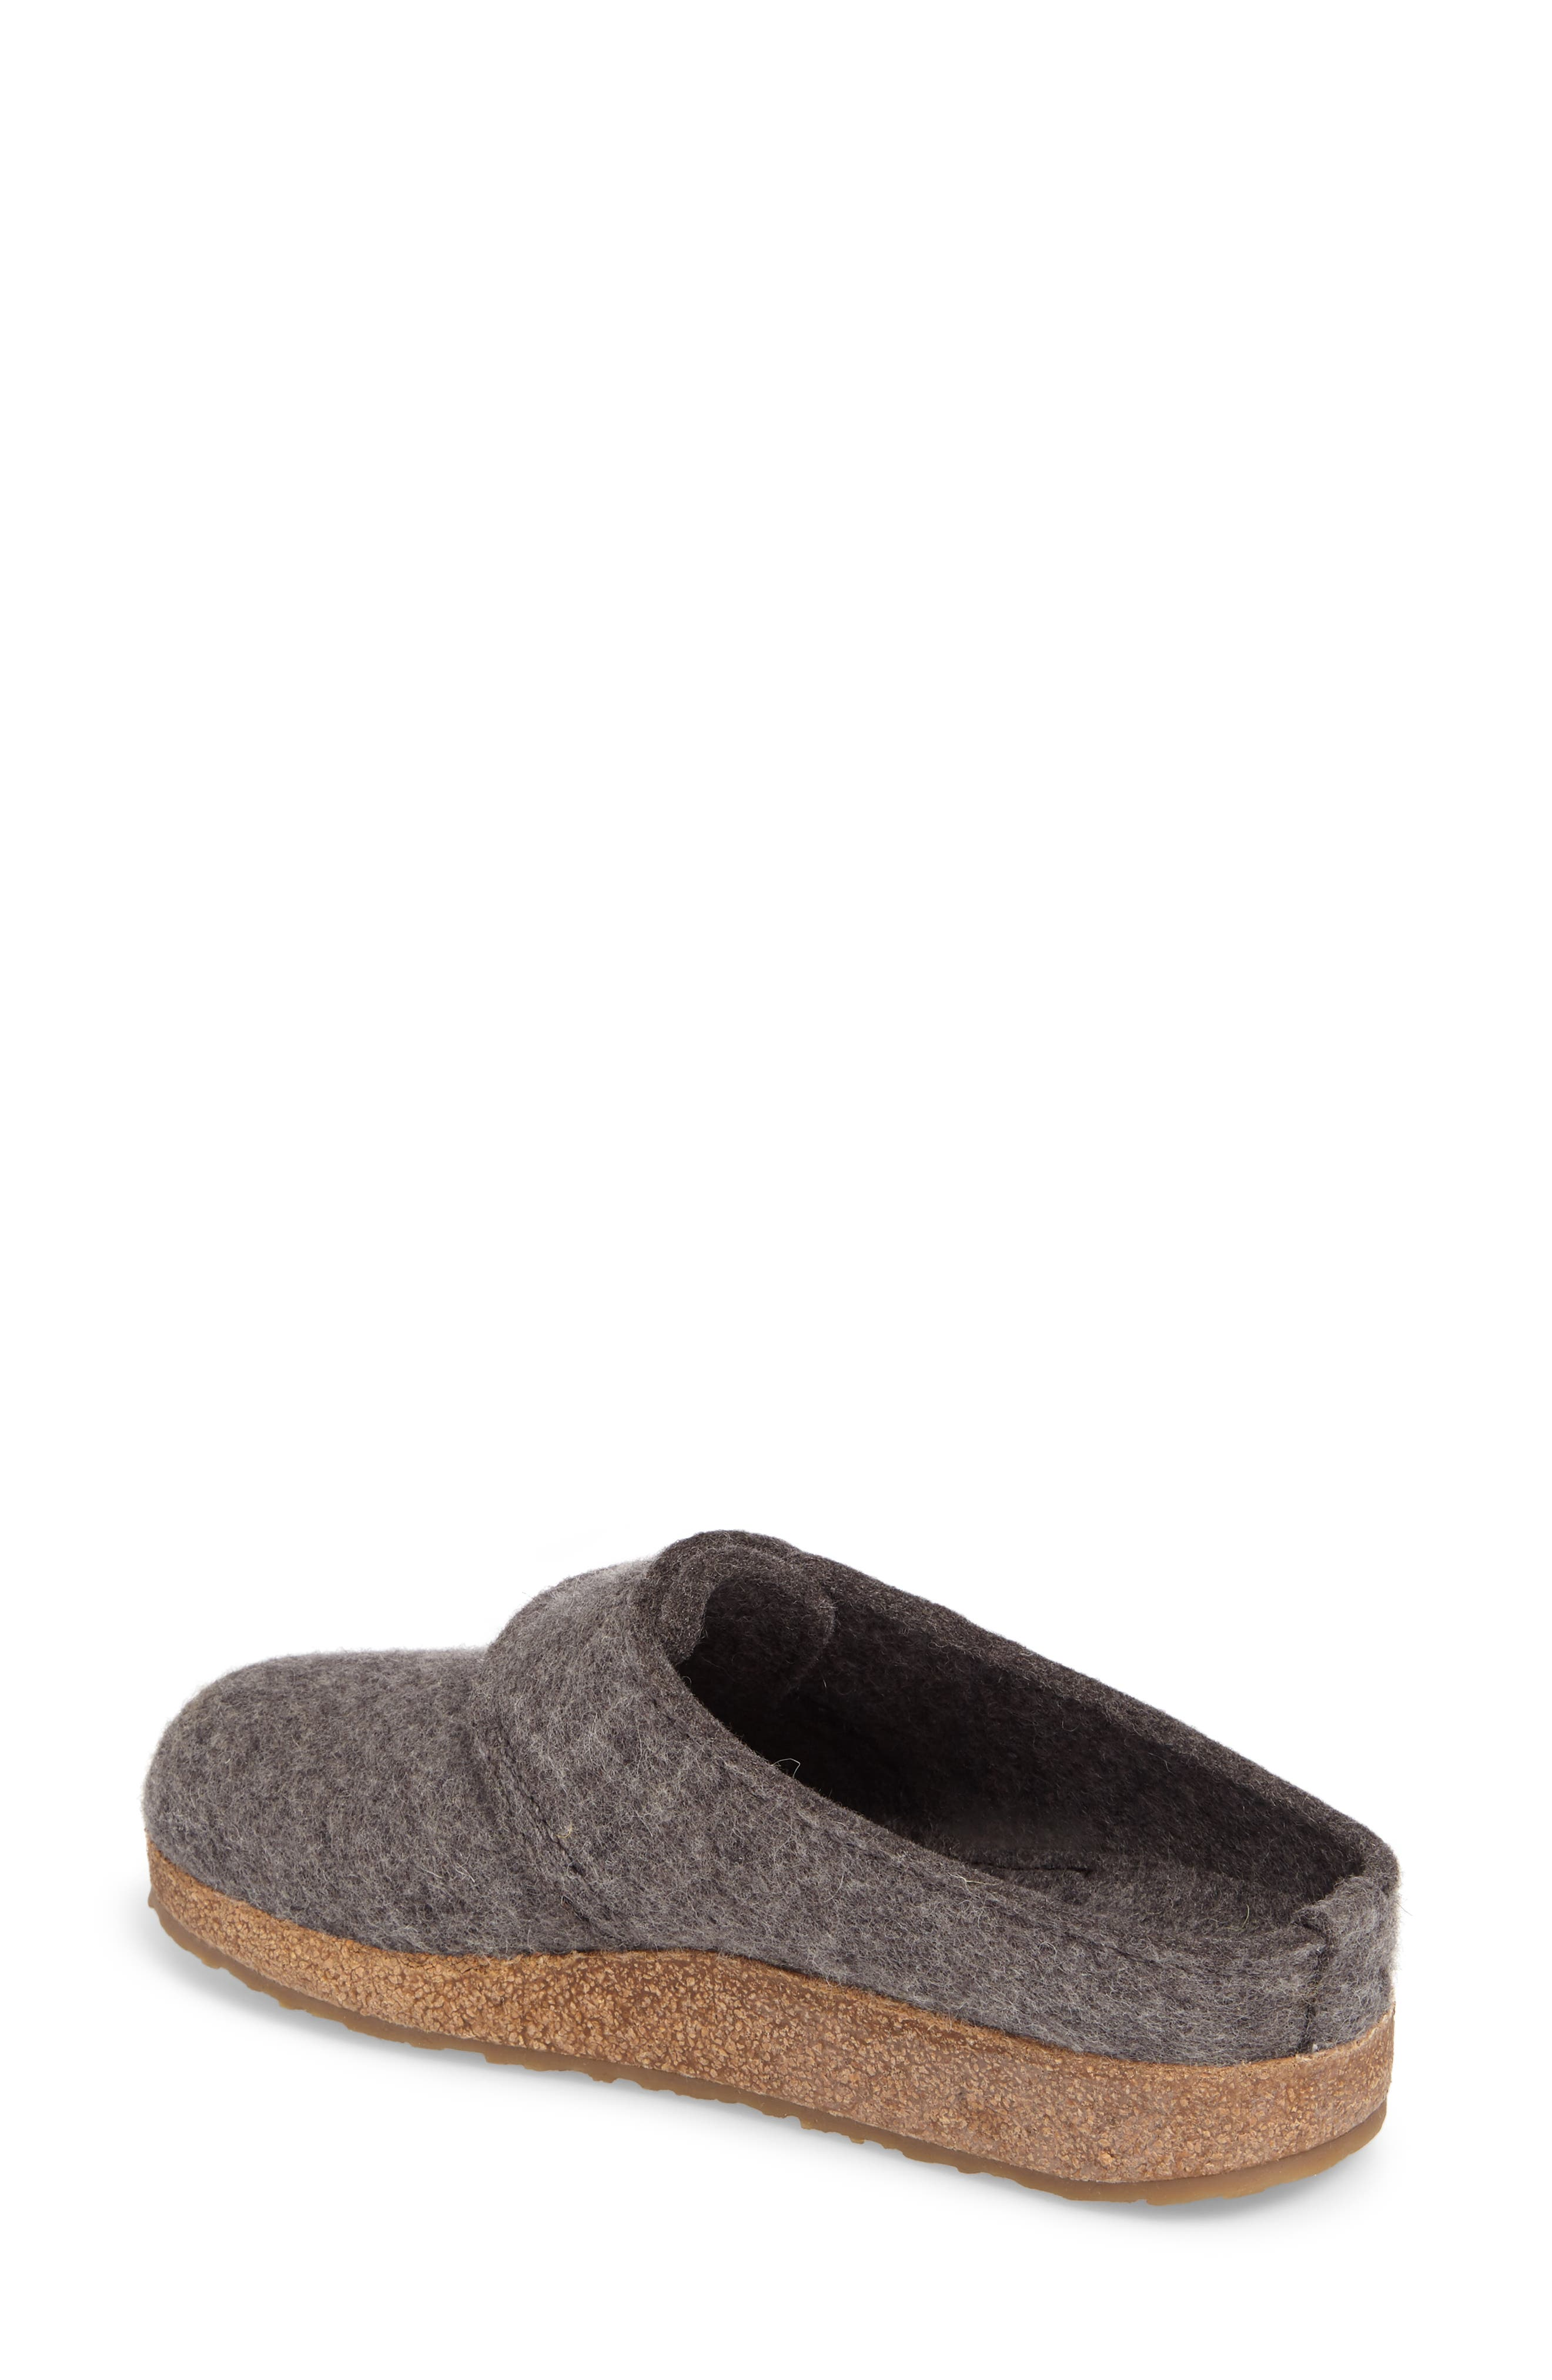 Grizzly Journey Clog Slipper,                             Alternate thumbnail 2, color,                             020